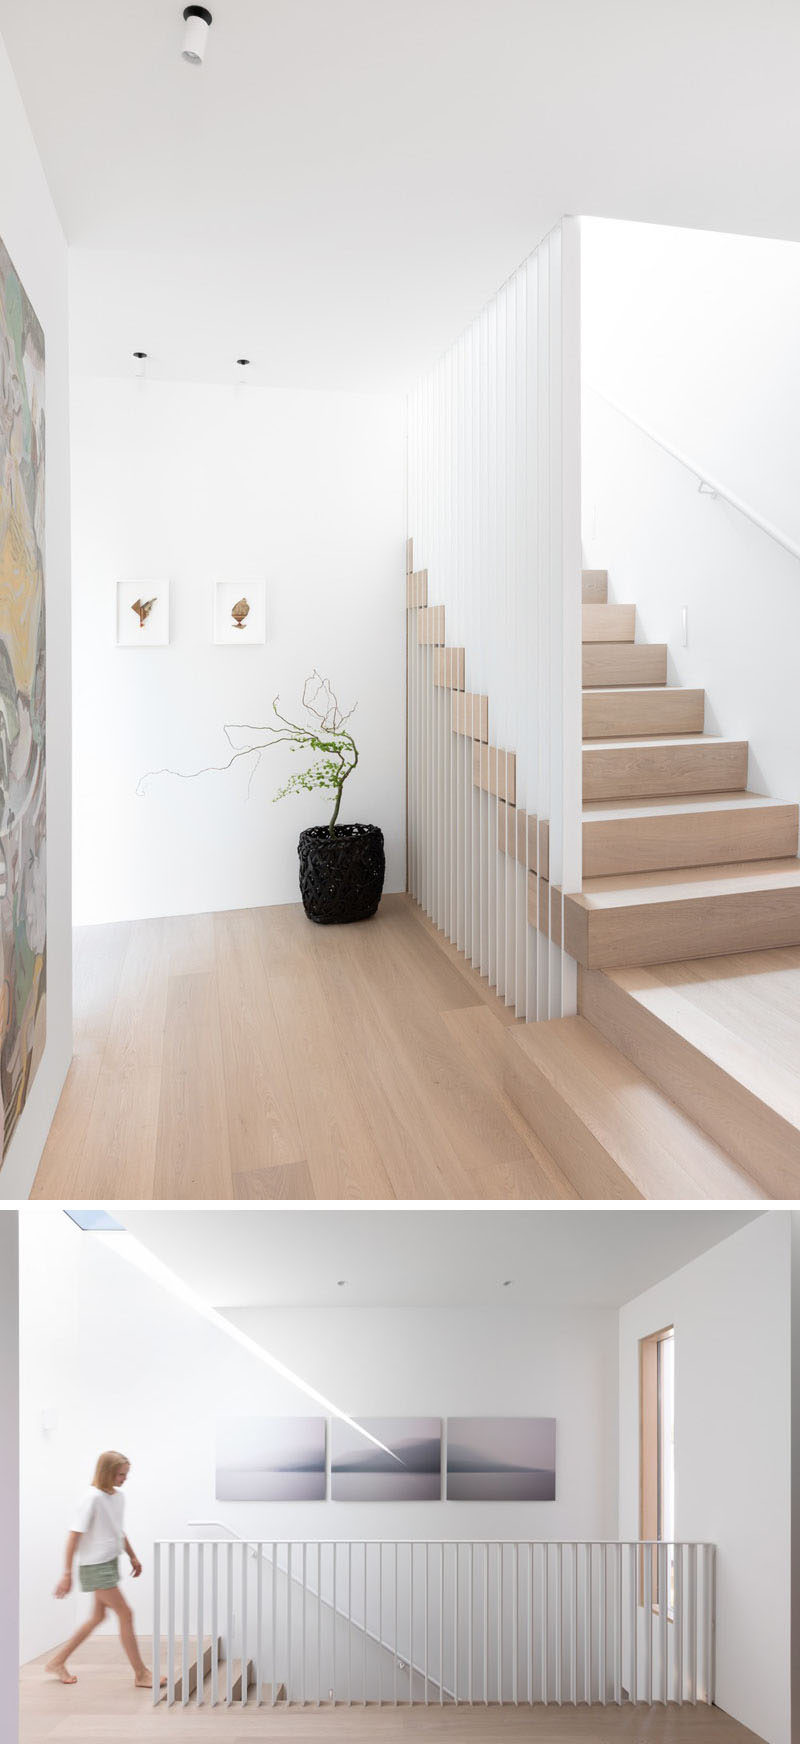 These modern stairs have slatted steel guards that intersect Nordic Oak treads. At the top of the stairs, there's a skylight that provides natural light to the landing. #ModernStairs #WoodAndWhiteStairs